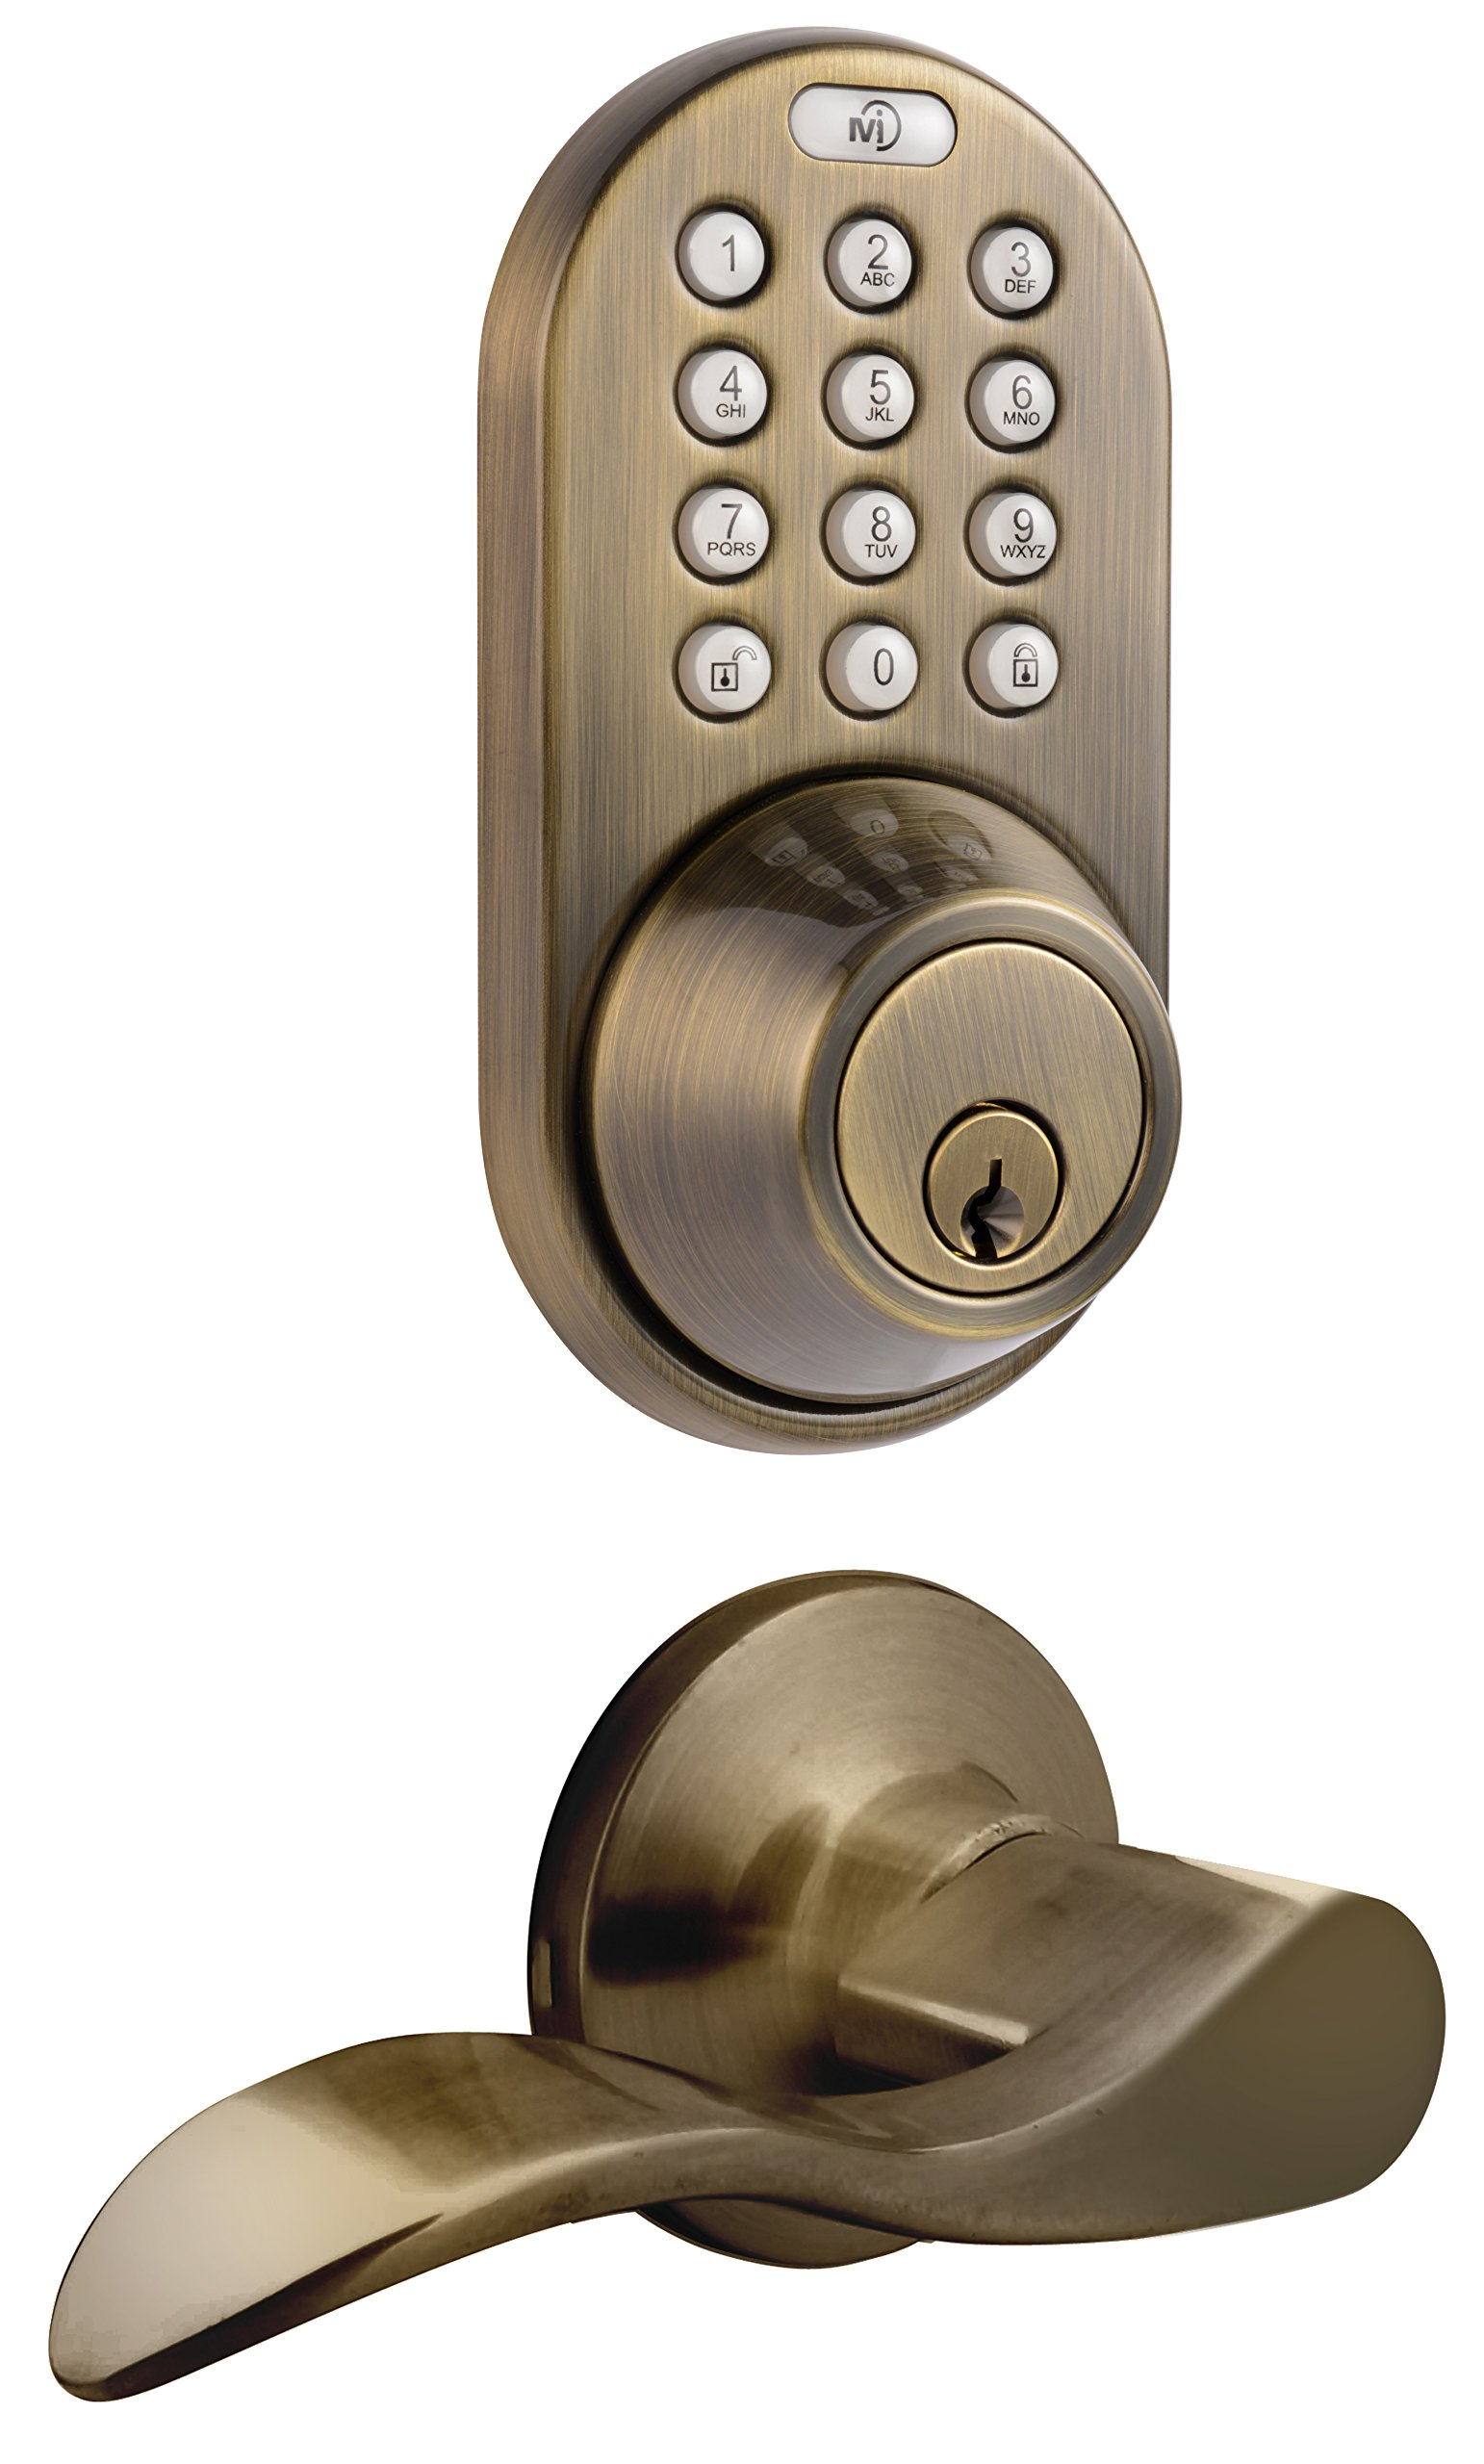 MiLocks DFL-02AQ Electronic Touchpad Entry Keyless Deadbolt and Passage Lever Combo, Antique Brass by MiLocks (Image #1)